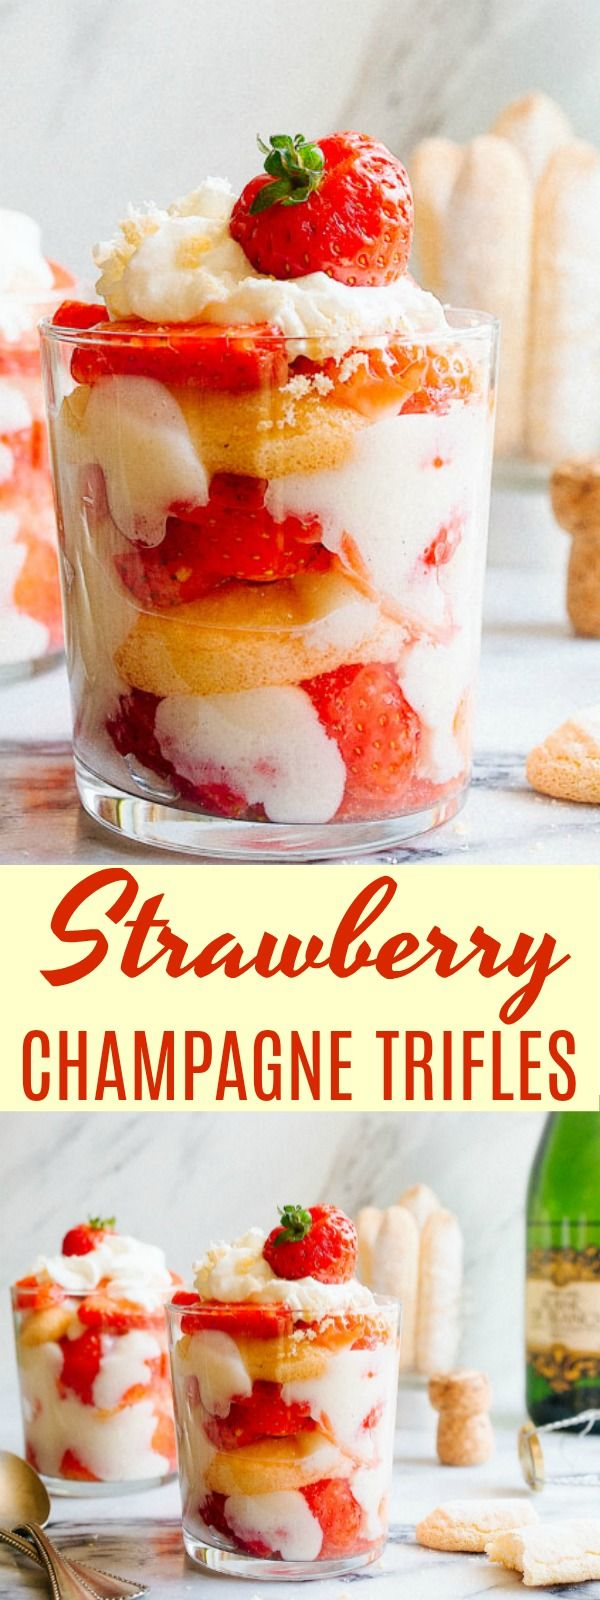 Strawberry Champagne Trifles for two for New Year's Eve dessert or Valentine's Day dessert for two. Champagne desserts. Leftover champagne dessert. via @dessertfortwo